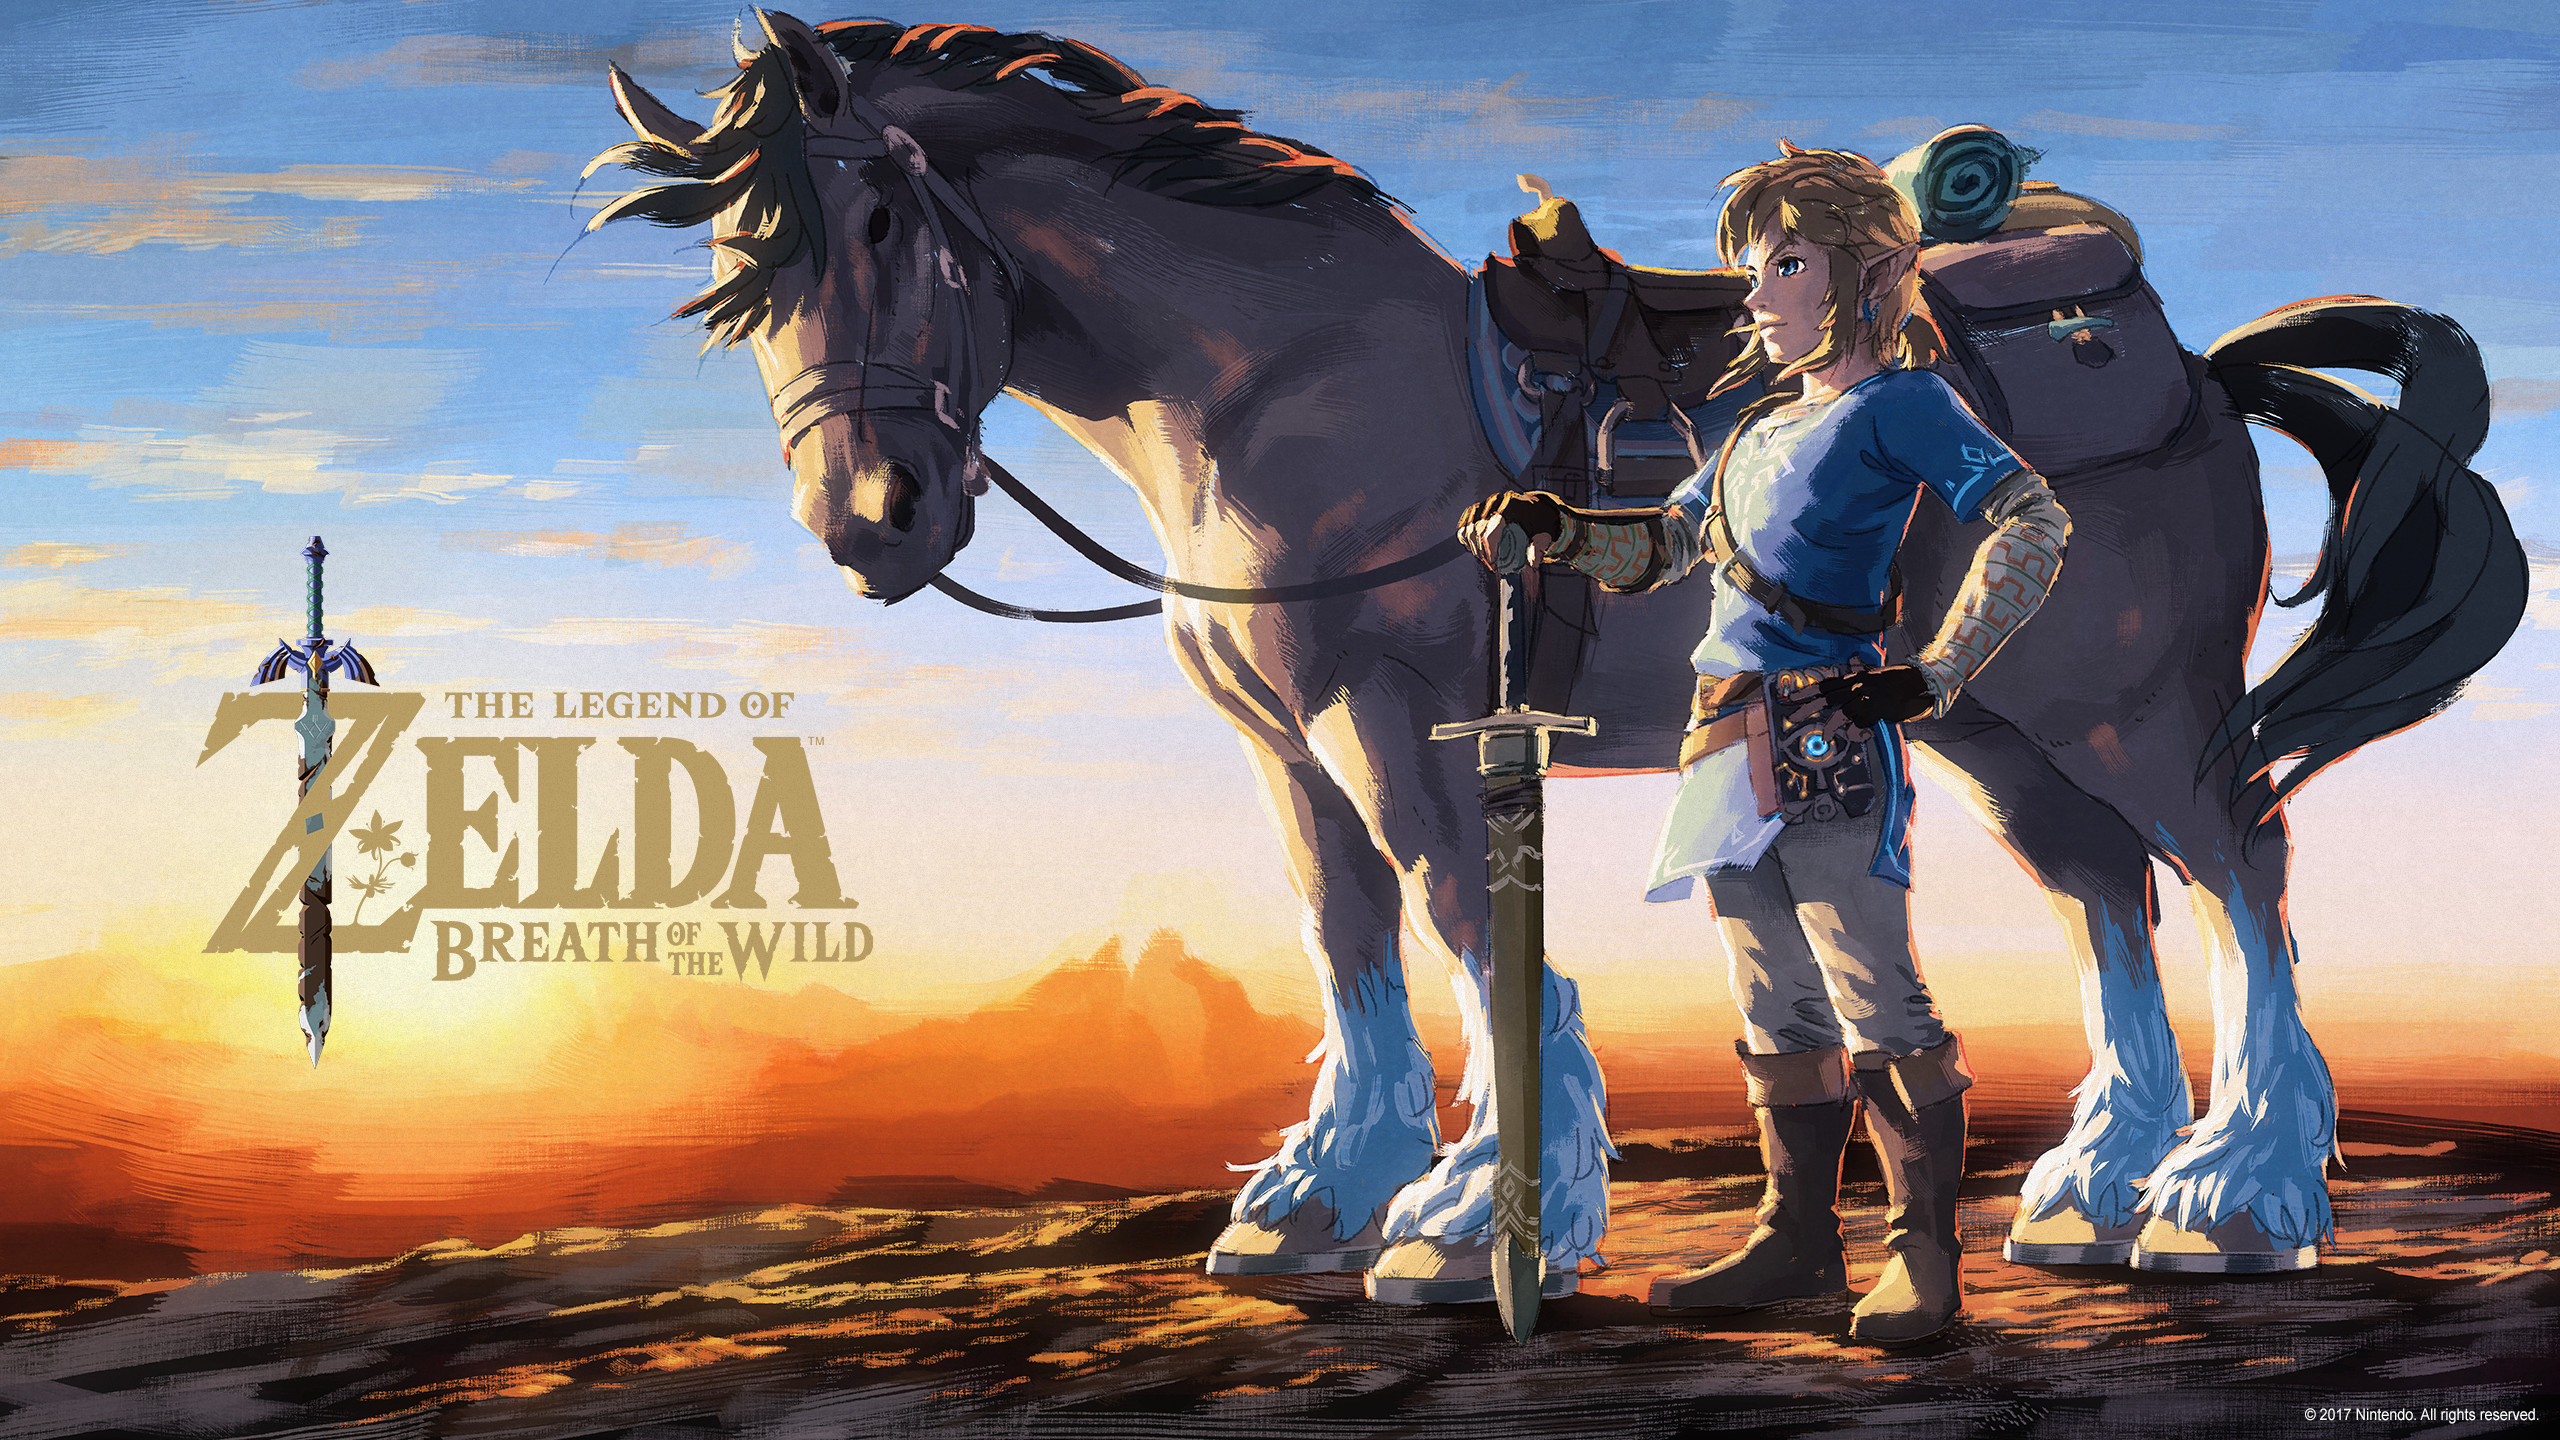 The Legend of Zelda Breath of the Wild for the Nintendo Switch 2560x1440